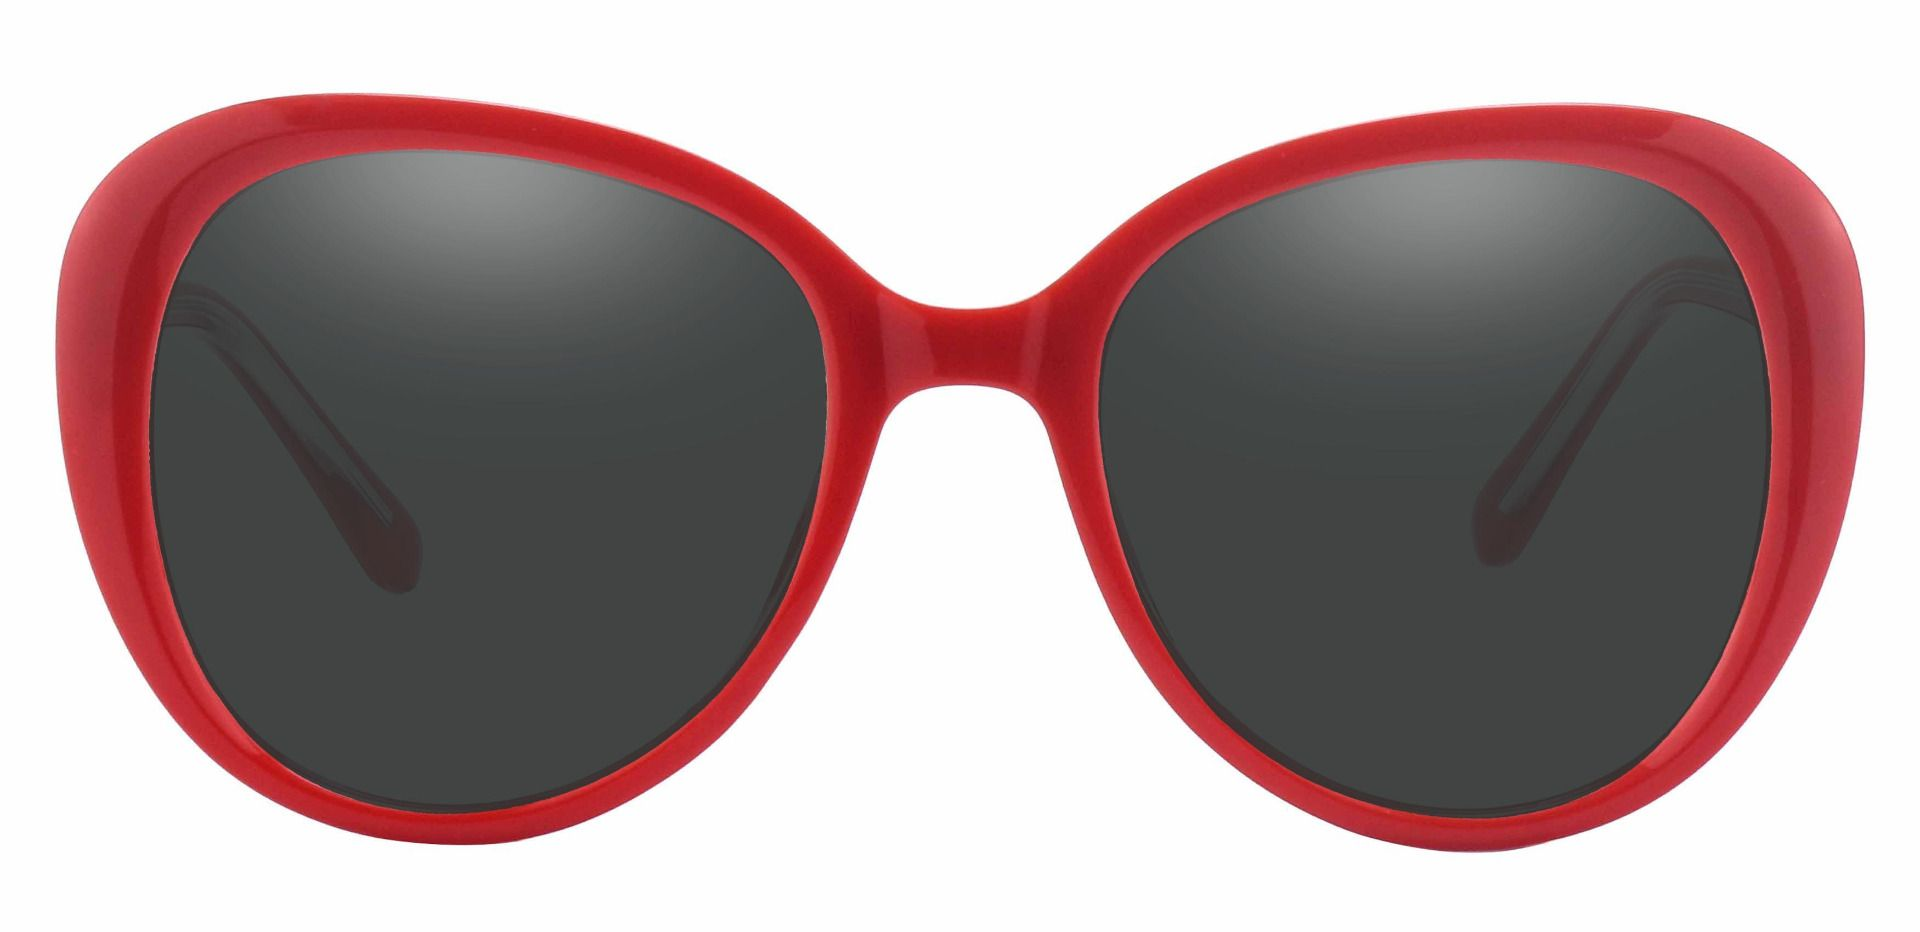 Sheridan Oval Lined Bifocal Sunglasses - Red Frame With Gray Lenses